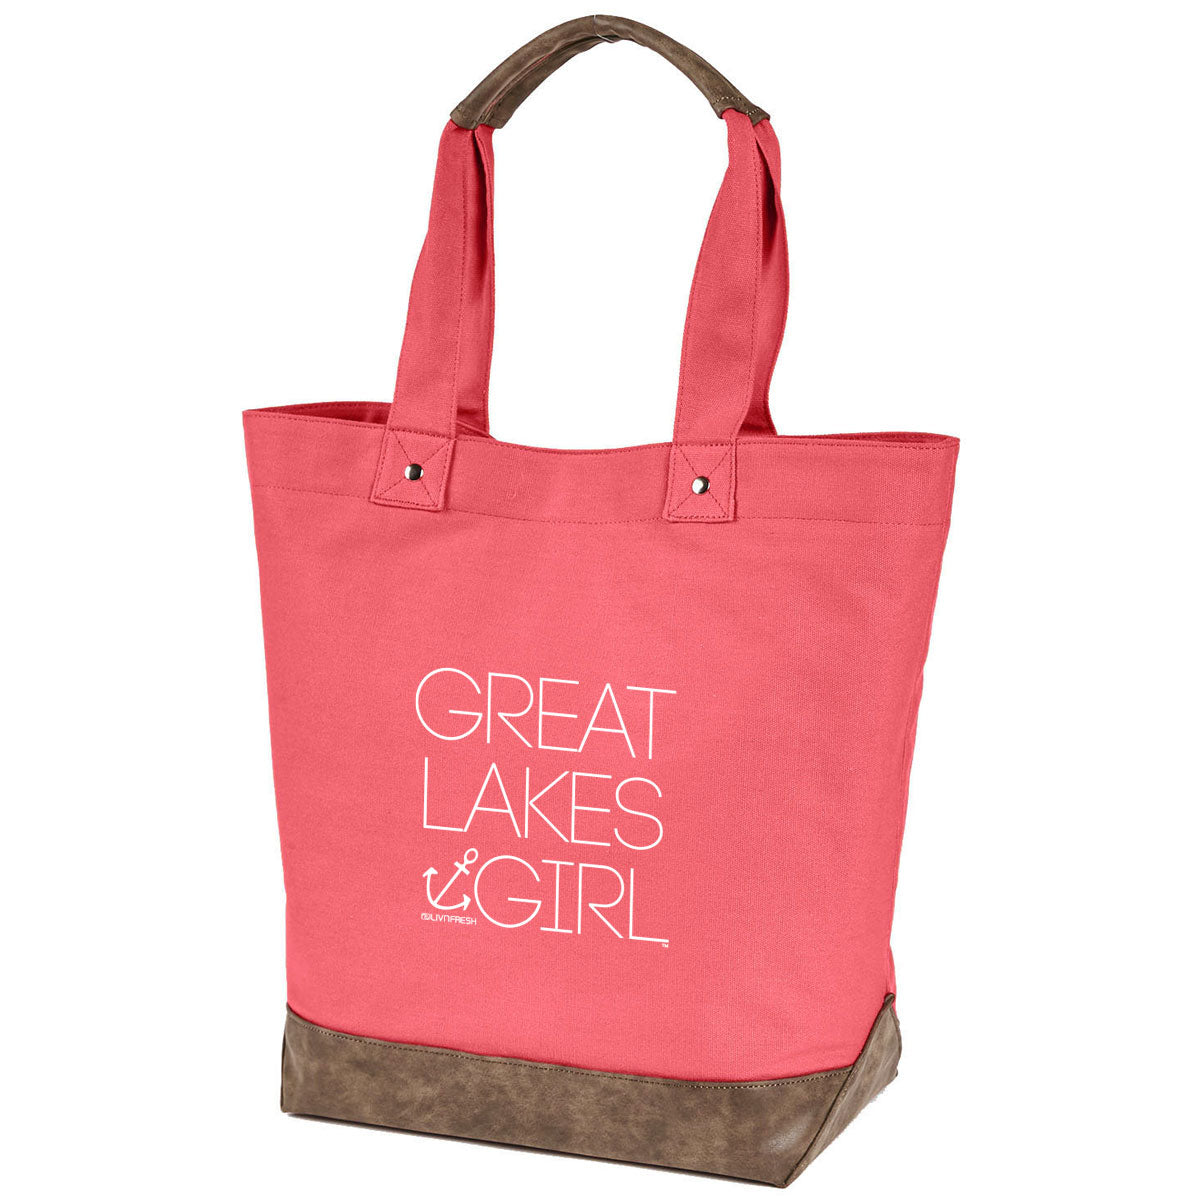 Great Lakes Girl Canvas Tote Bag